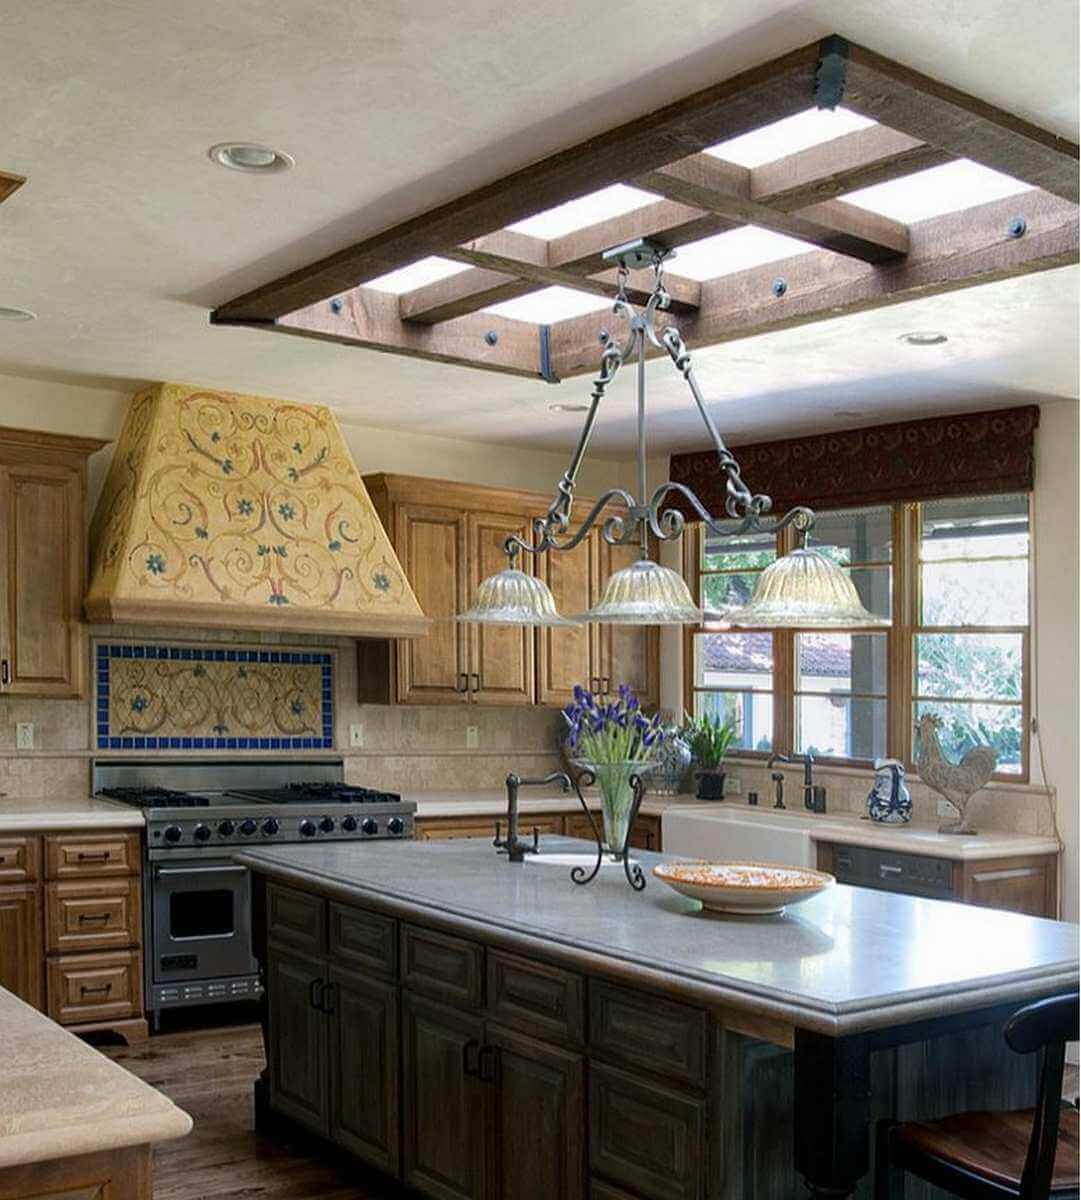 Fixed skylight in rustic tuscan style kitchen